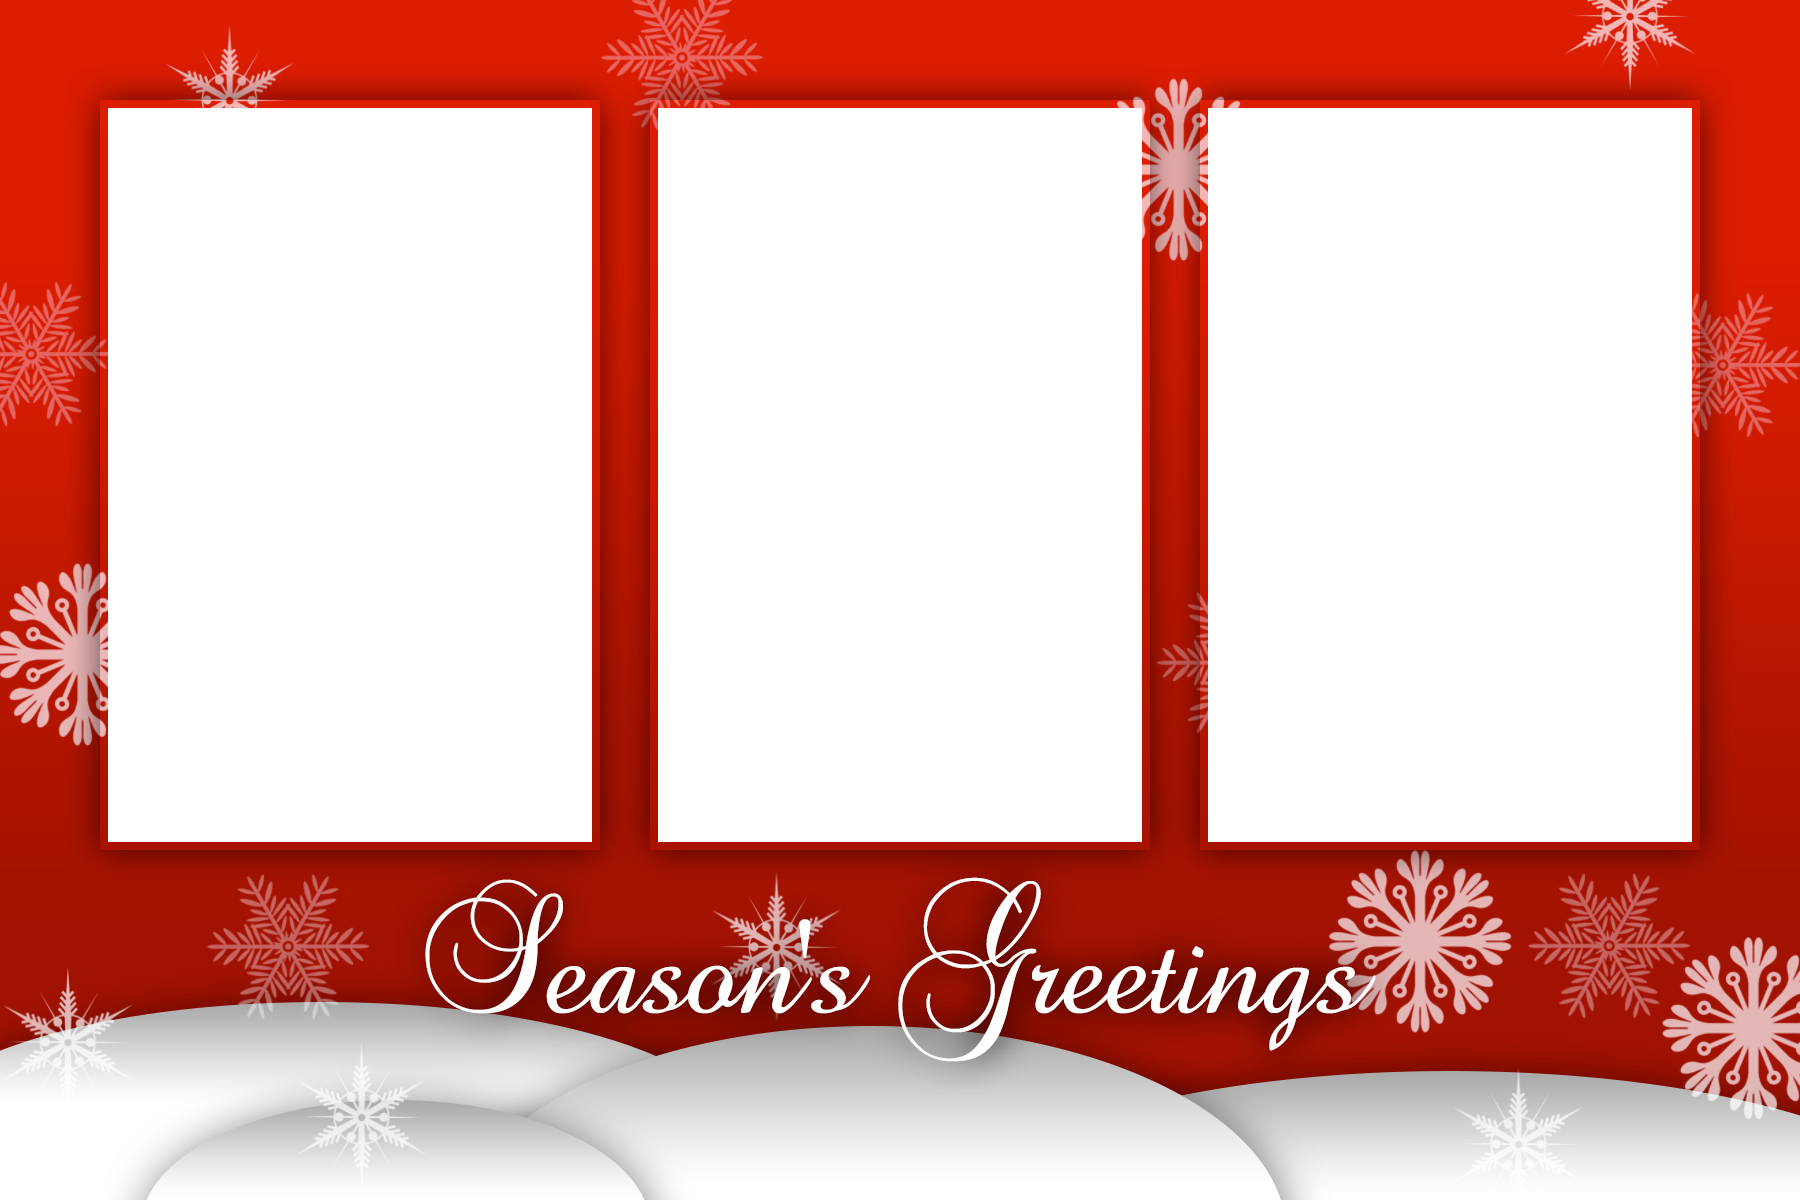 Free seasons greetings overlay for mirror me m4hsunfo